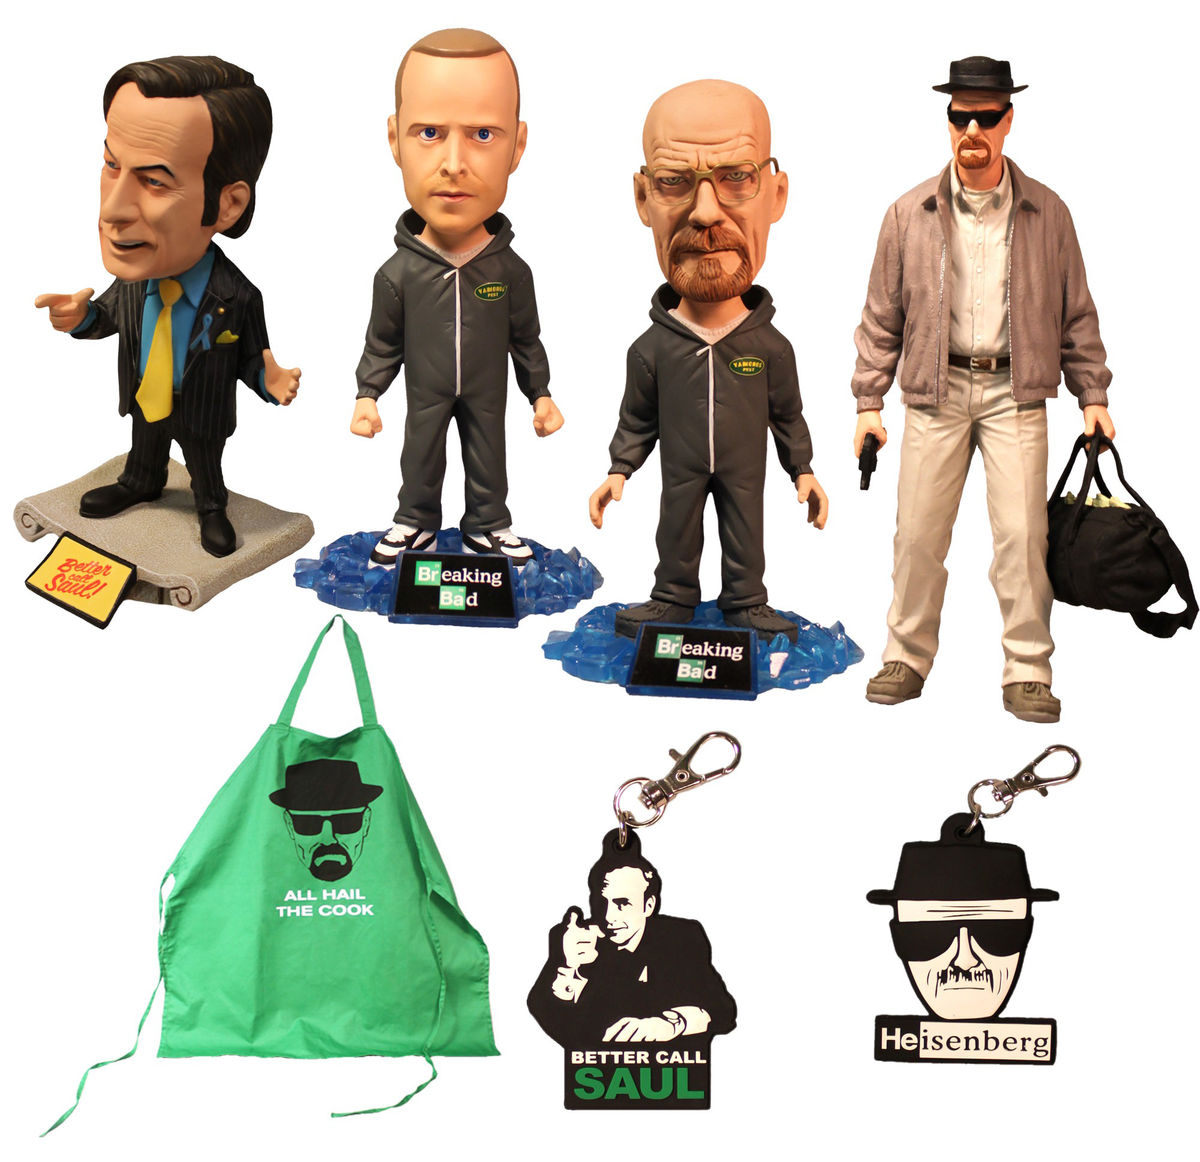 Toys 'R' Us comes under fire for selling 'breaking bad' line